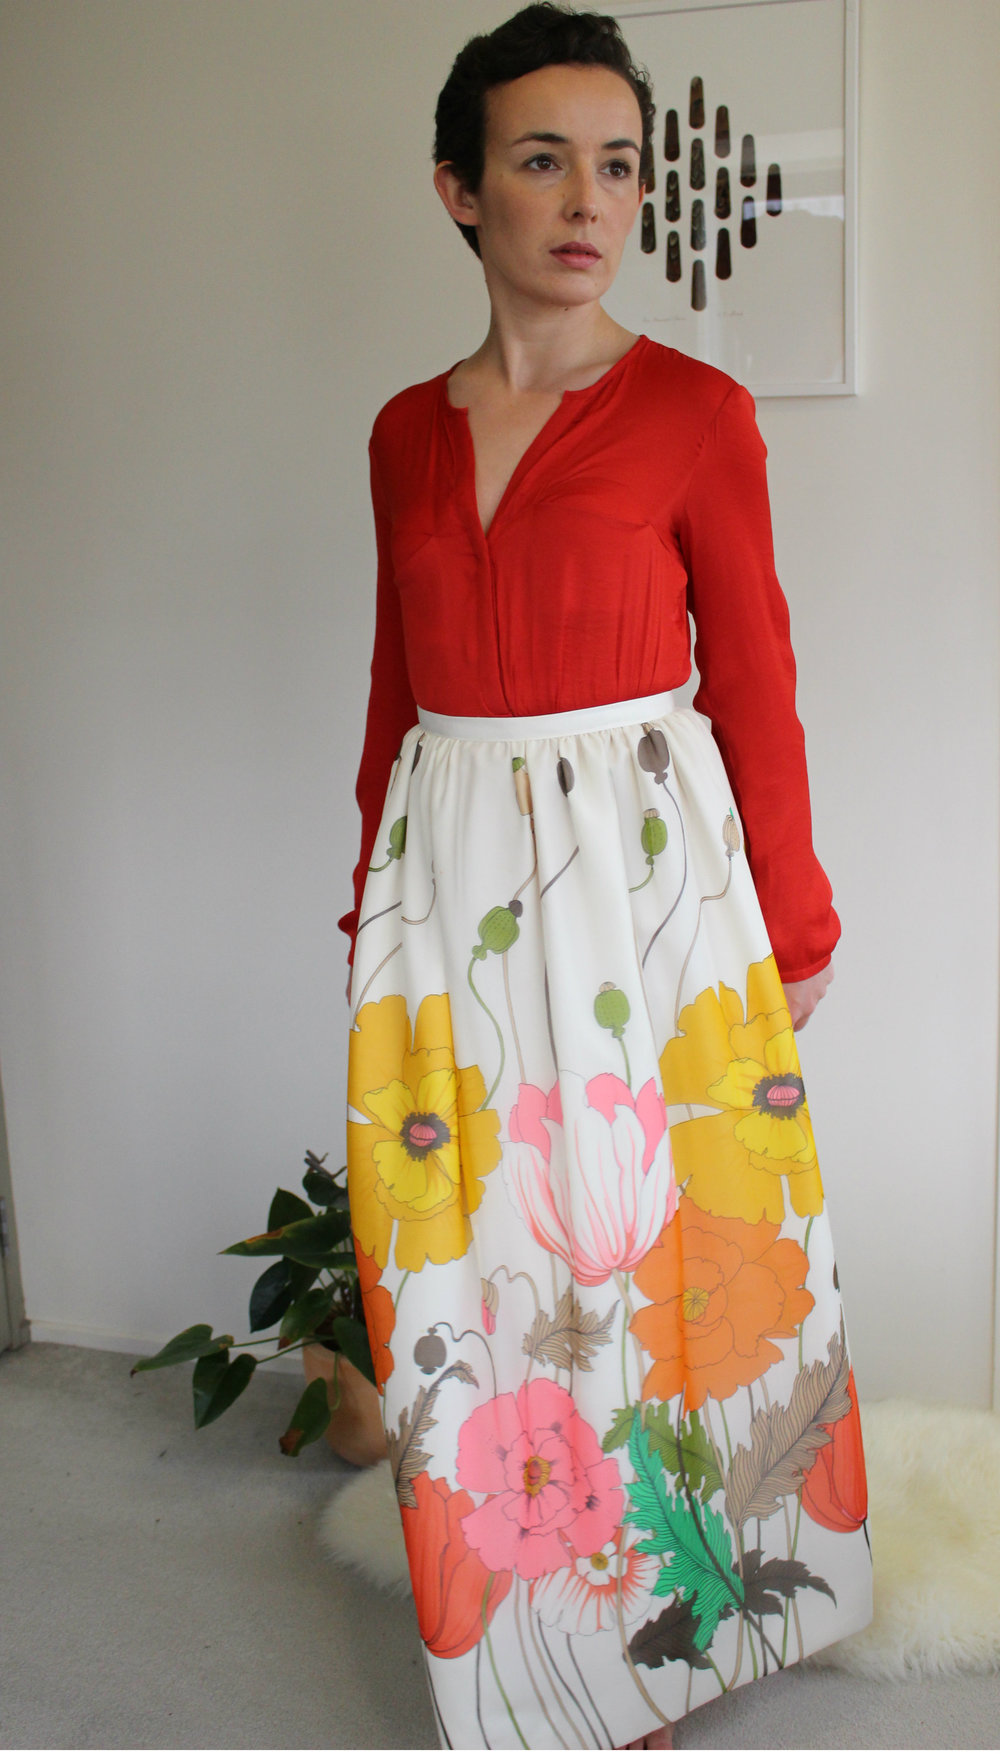 Blouse: Trafaluc (Zara) via Recycle Boutique, Skirt: no label via Thrift